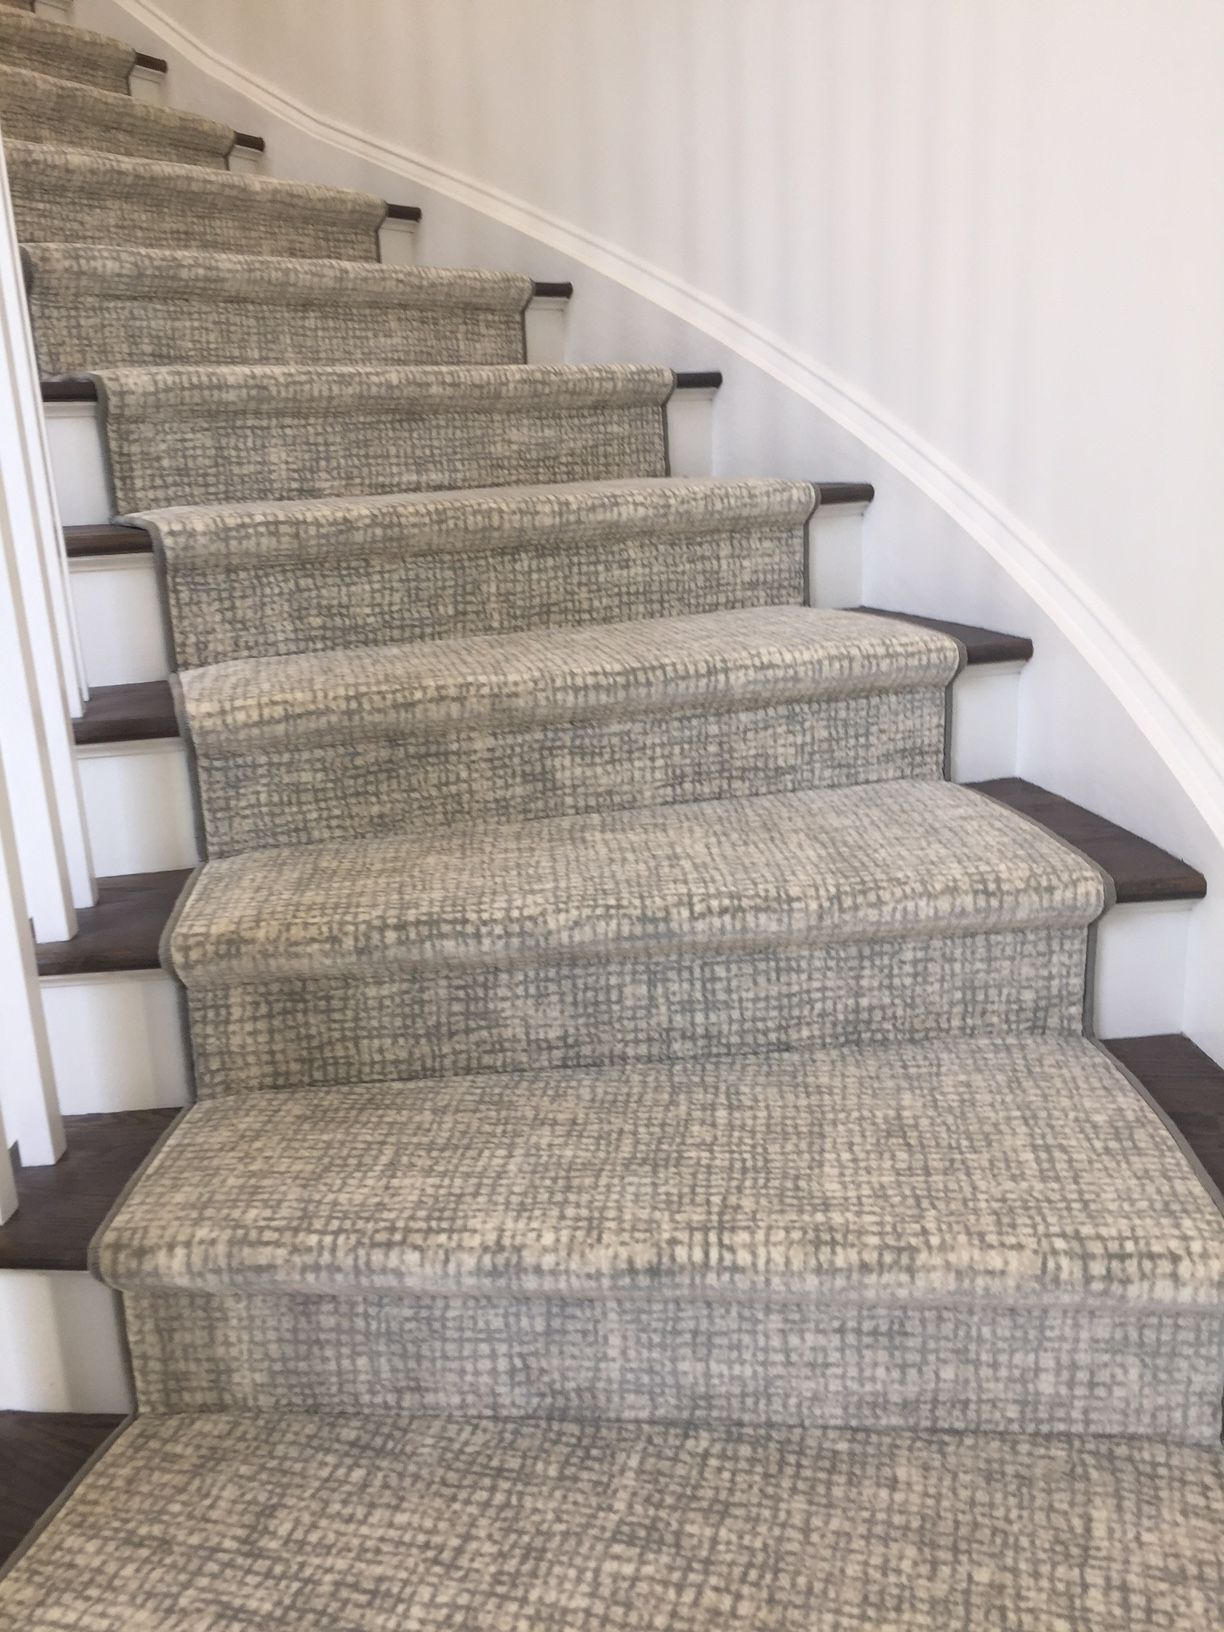 install of carpet one curved staircase runner with standard binding We tackle all projects